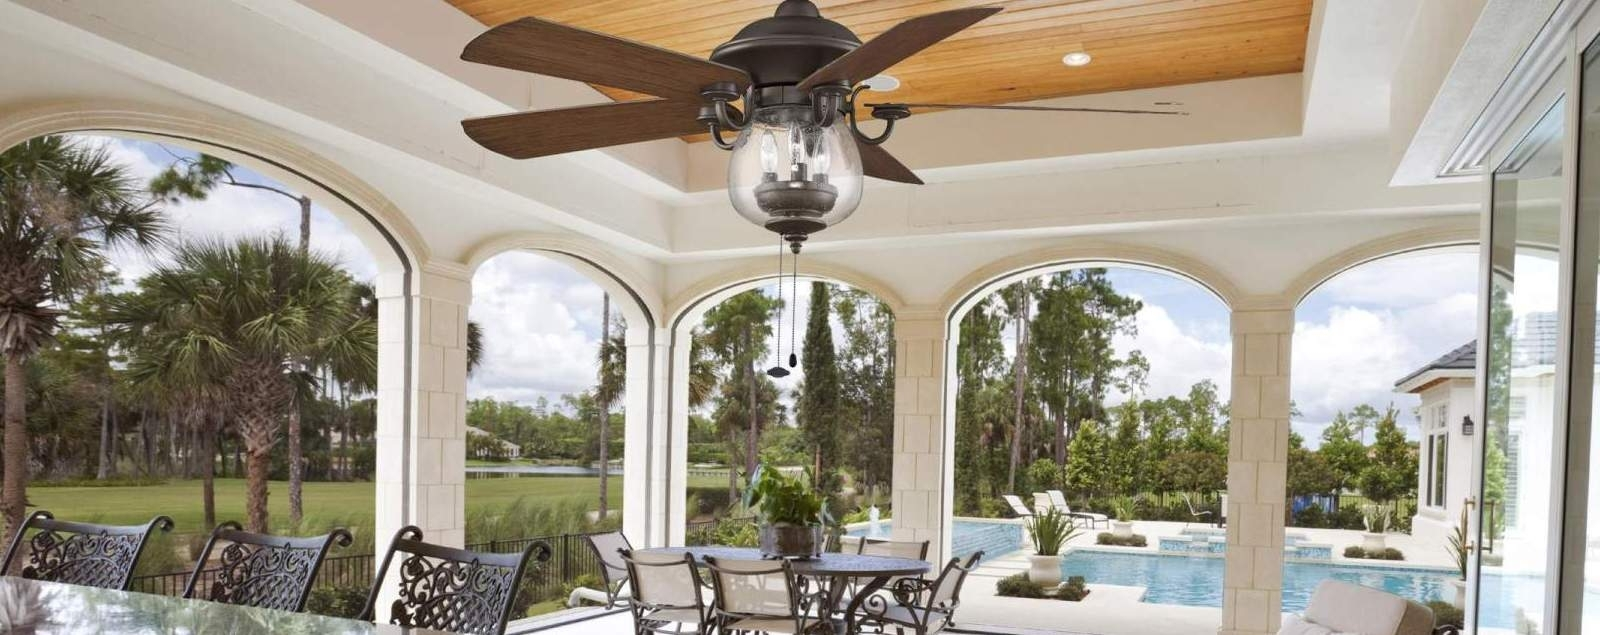 2019 Outdoor Ceiling Fans For Screened Porches Intended For Outdoor Ceiling Fans – Shop Wet, Dry, And Damp Rated Outdoor Fans (View 2 of 20)